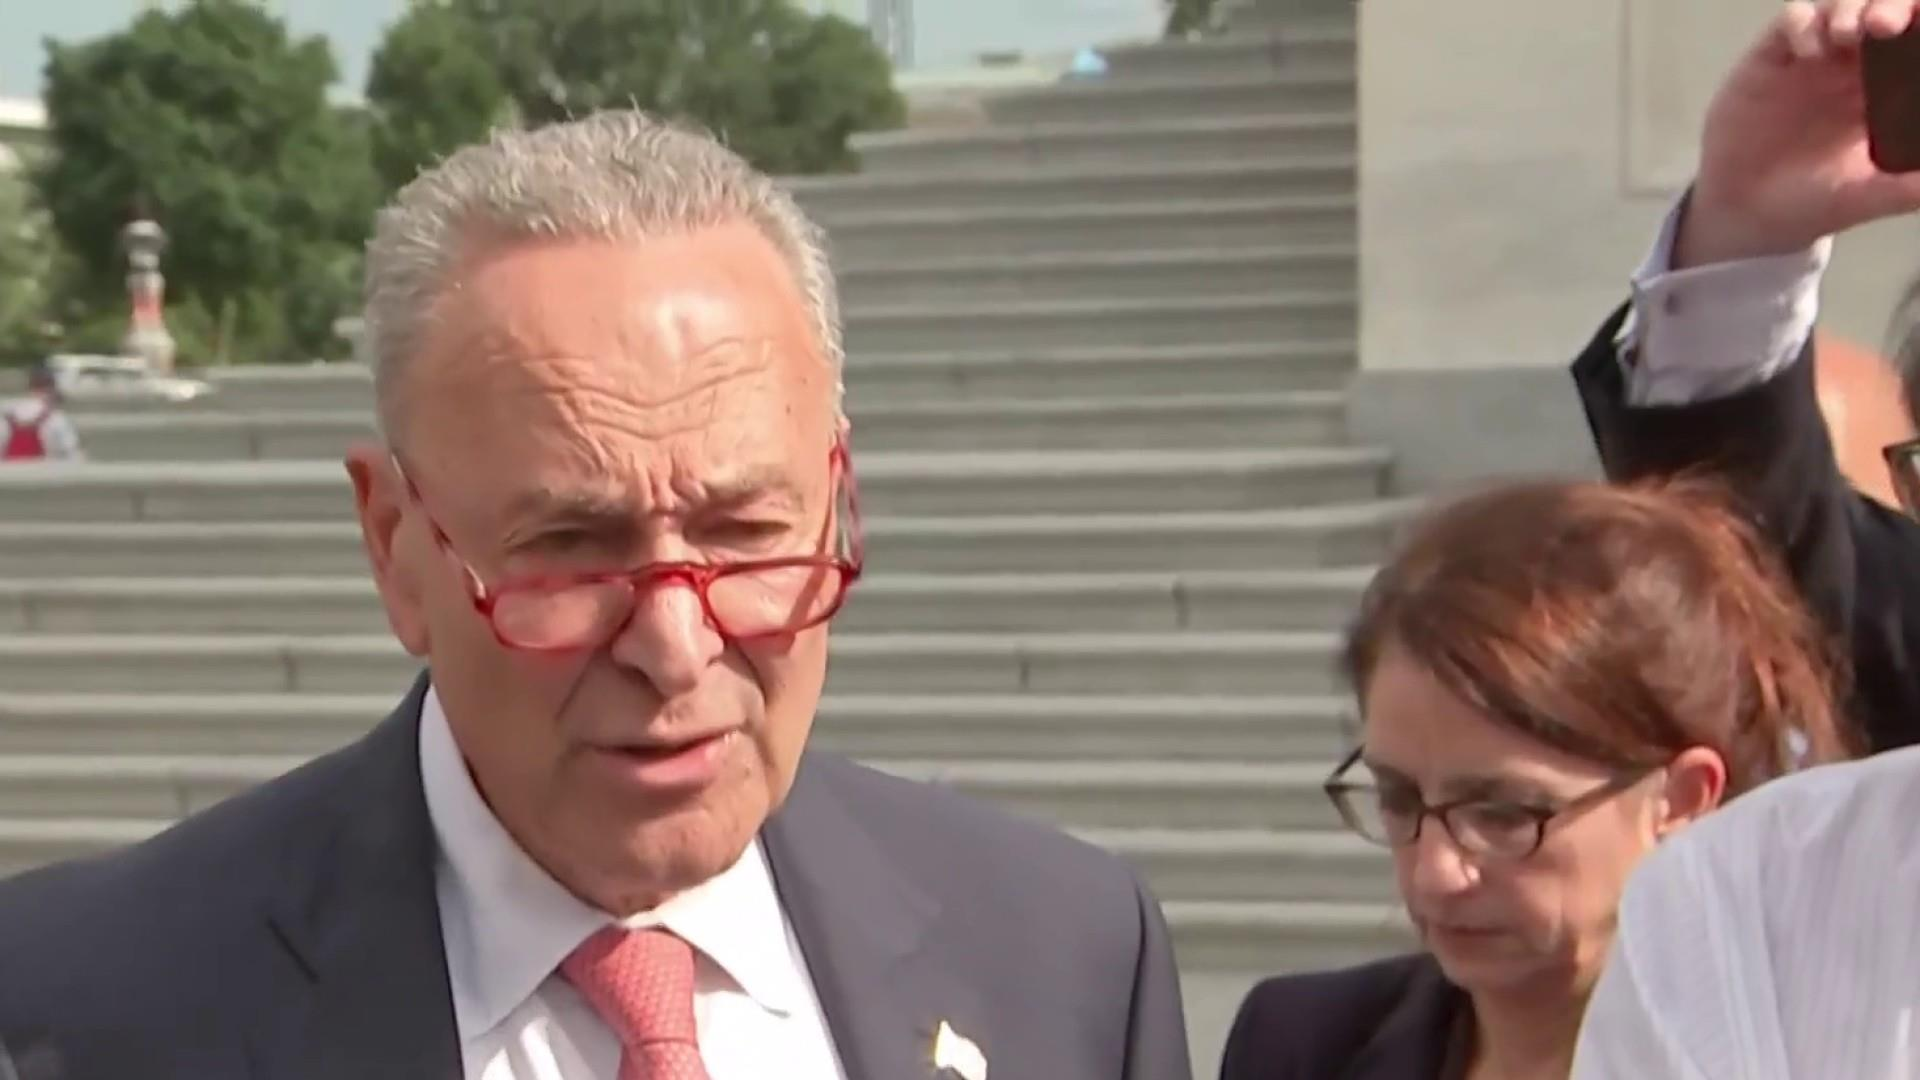 Schumer: 'We're worried' Trump 'and the administration may bumble into a war' with Iran